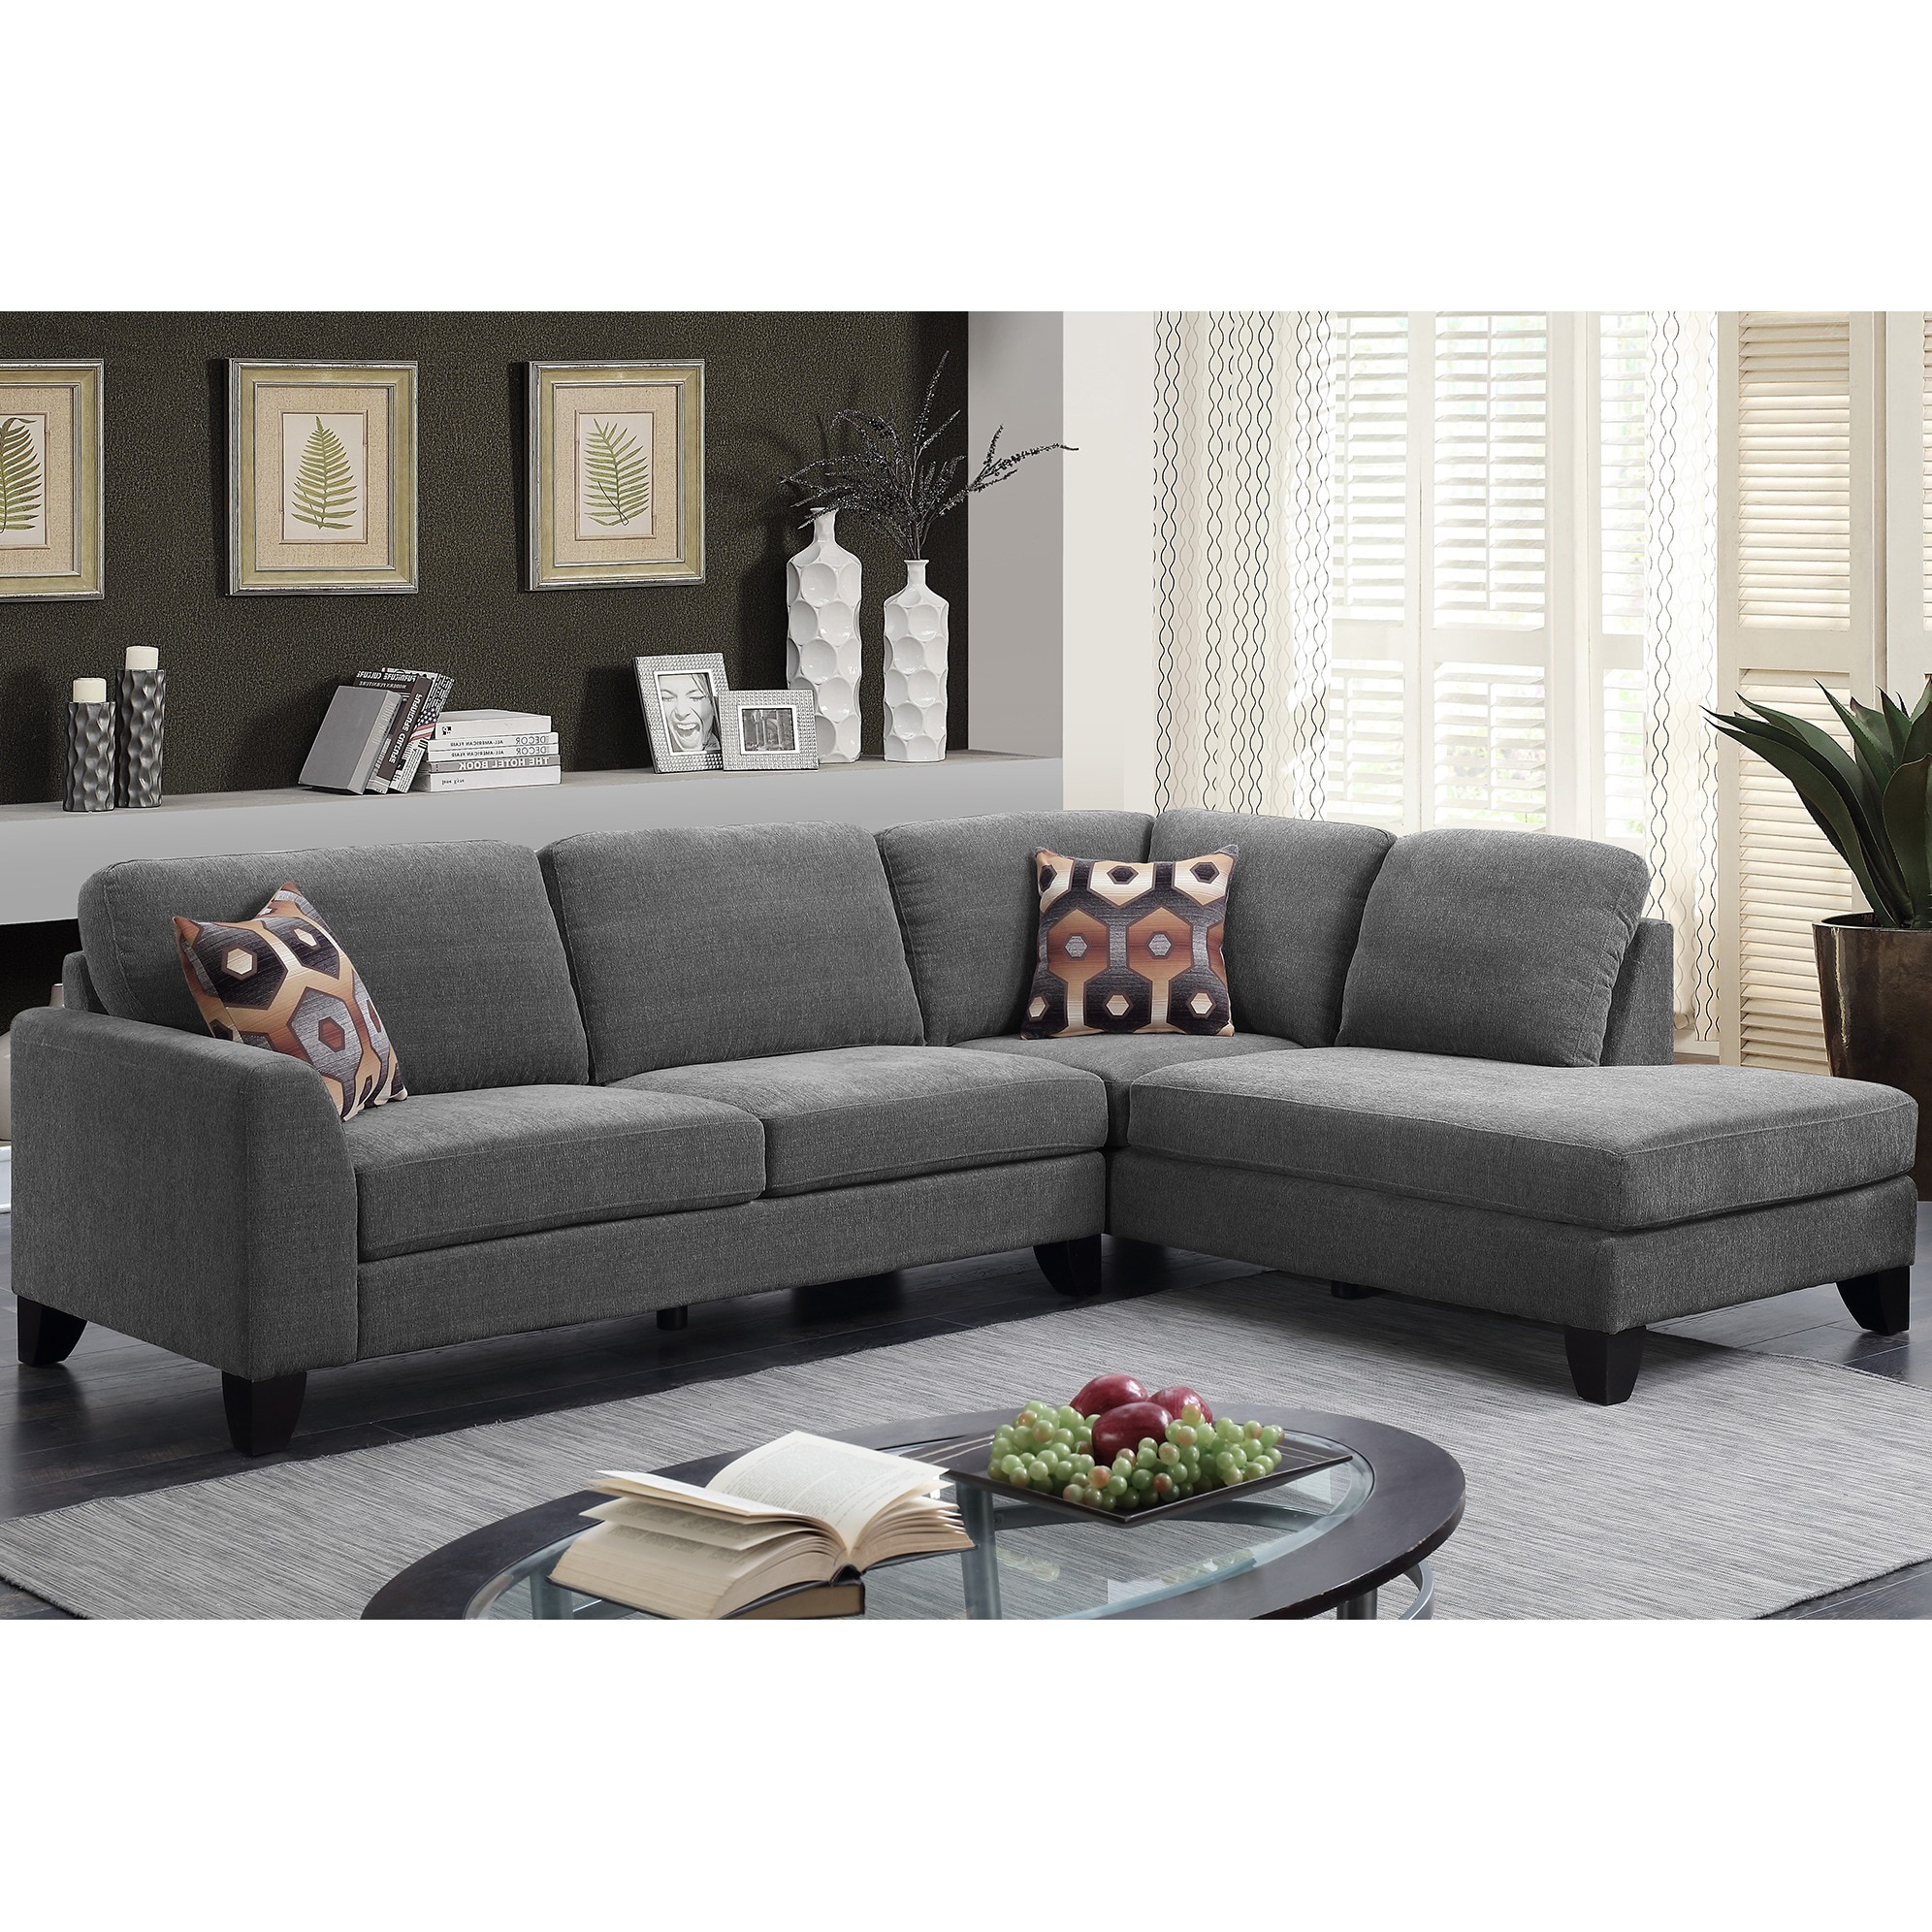 Chenille sectional sofa Sofas